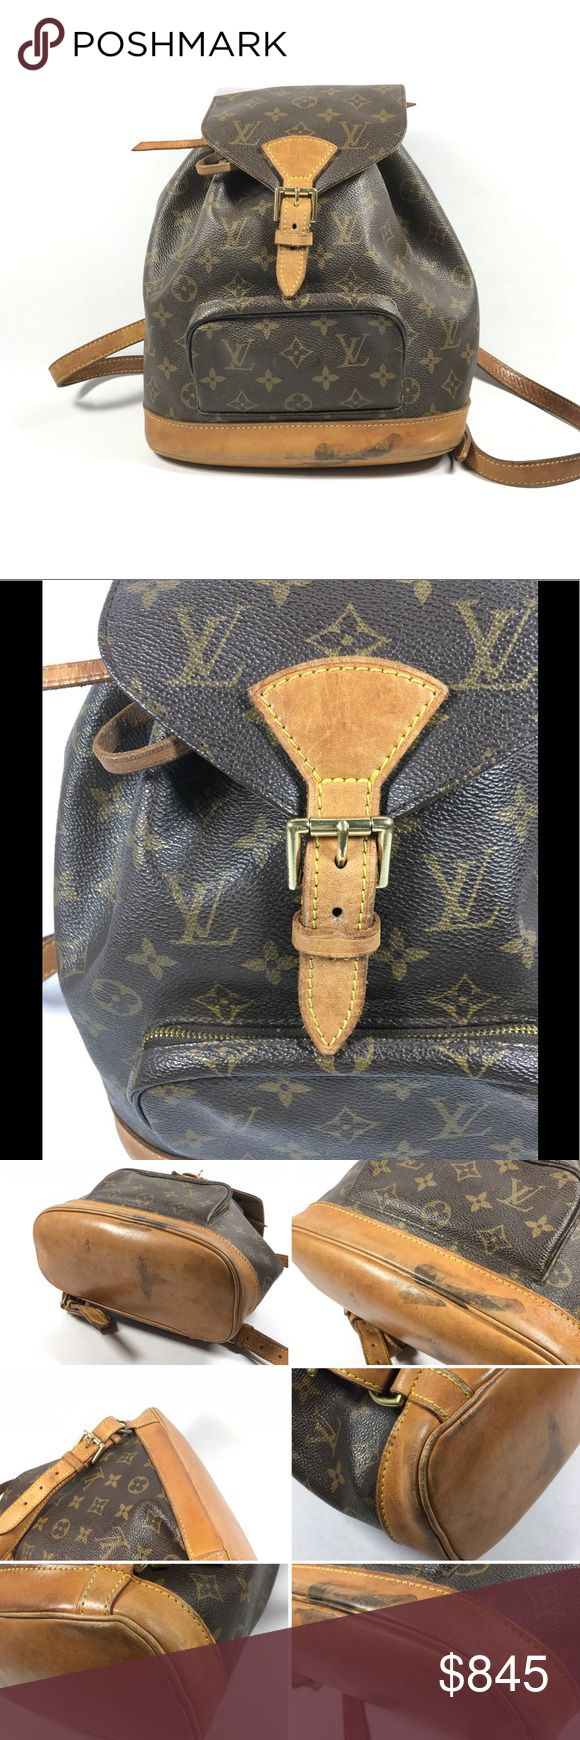 Authentic Louis Vuitton Backpack No lowballing, no trade.  Made in France   Serial number: SP0090  Gently used condition  Light aging, rub marks and minor marks on the monogram canvas. Stains, rub marks, rubbing, scratches and patina on the bottom leather trim. Shoulder straps show wrinkles, uneven coloring, rubbing and light stains. Outside zip pocket shows light signs of use. Darkening and rubbing on the drawstrings and top leather trim. Stains, scratches, rubs and snags on the interior…